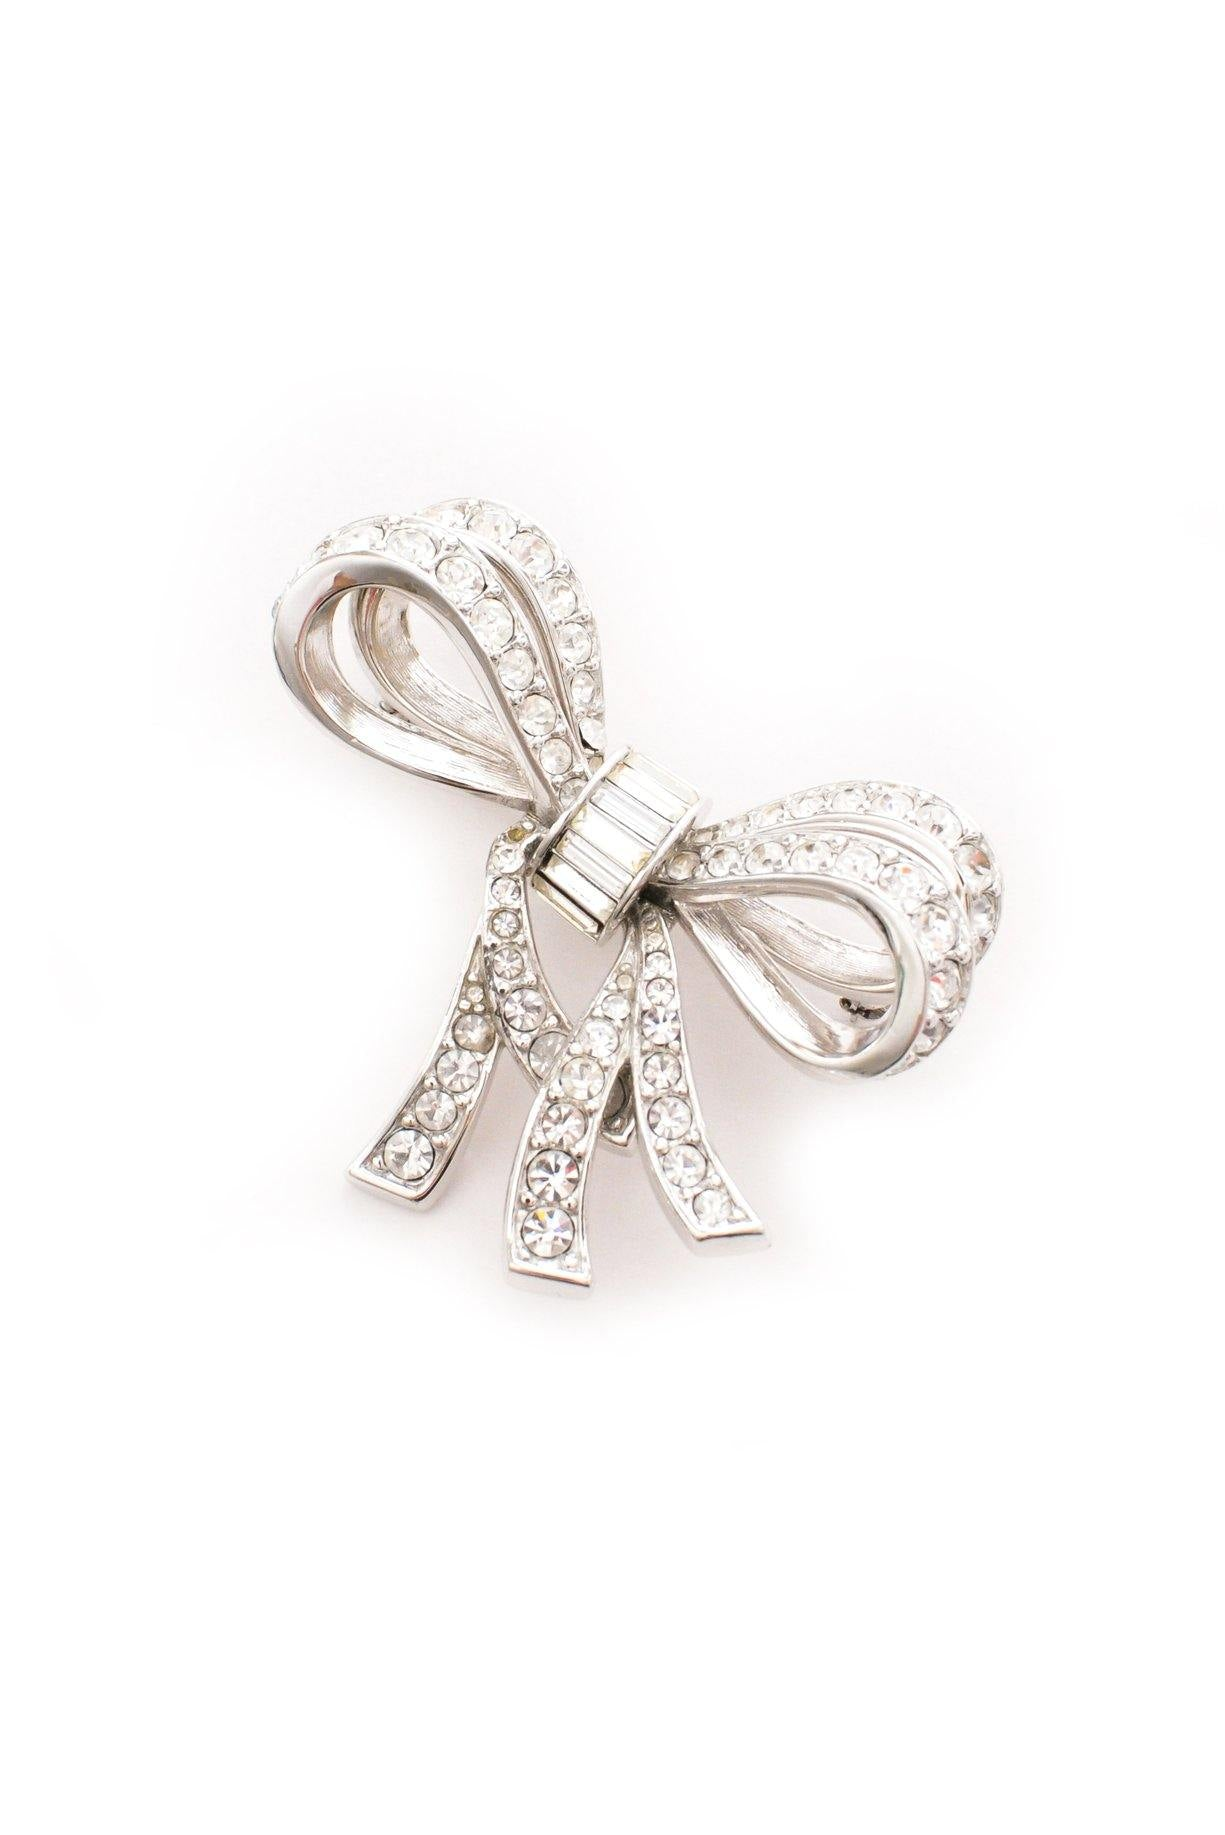 Rhinestone bow brooch from Sweet & Spark.